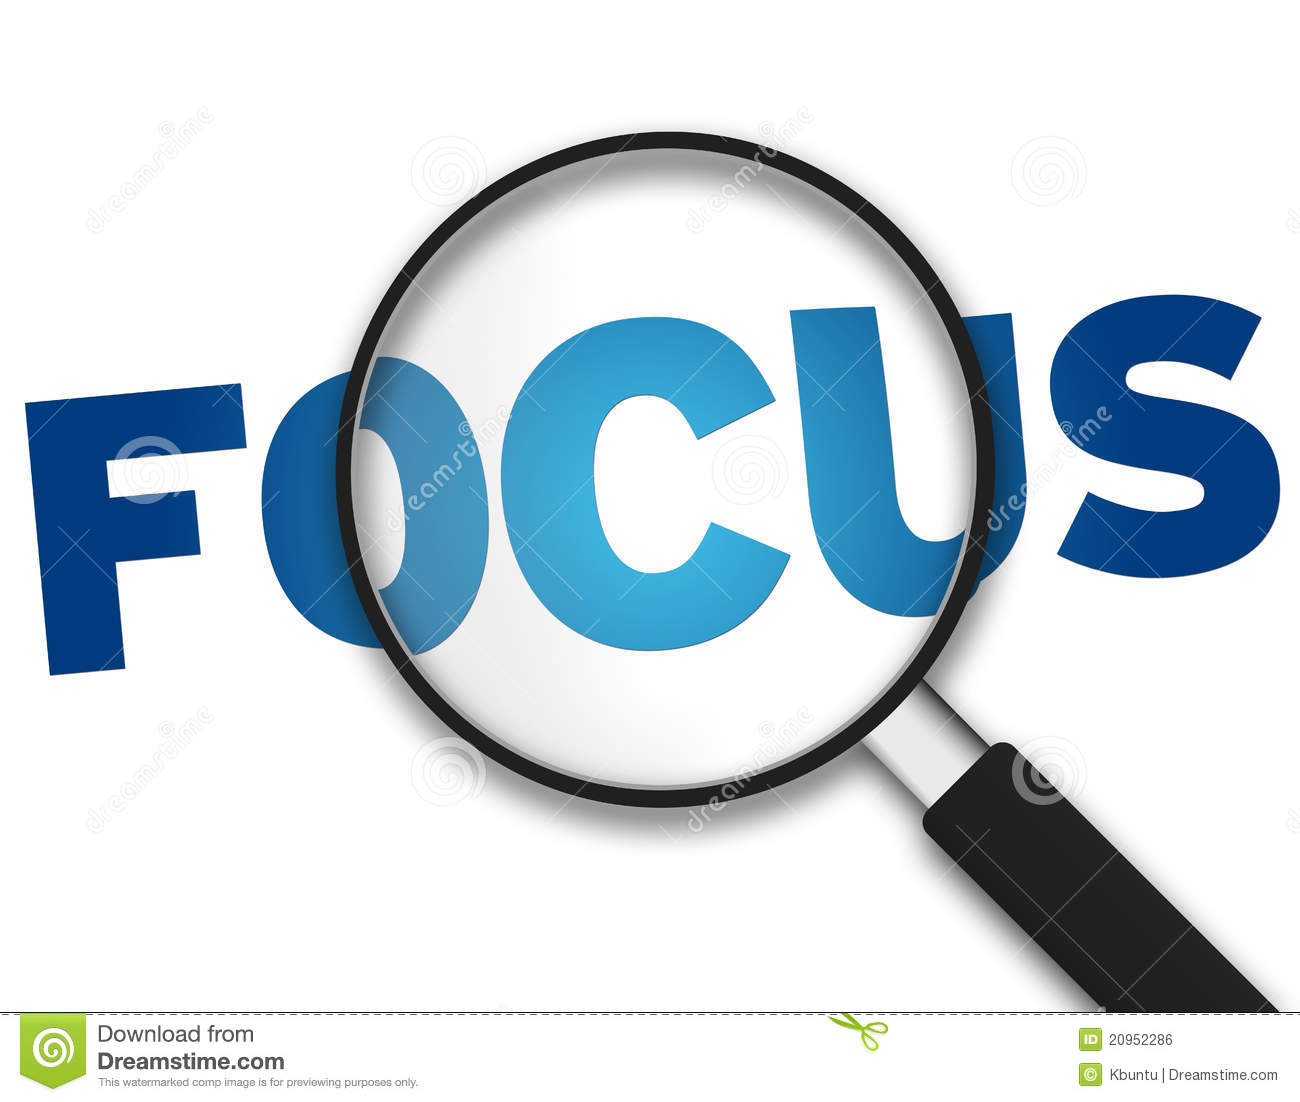 Magnifying Glass - Focus Royalty Free Stock Image - Image: 20952286